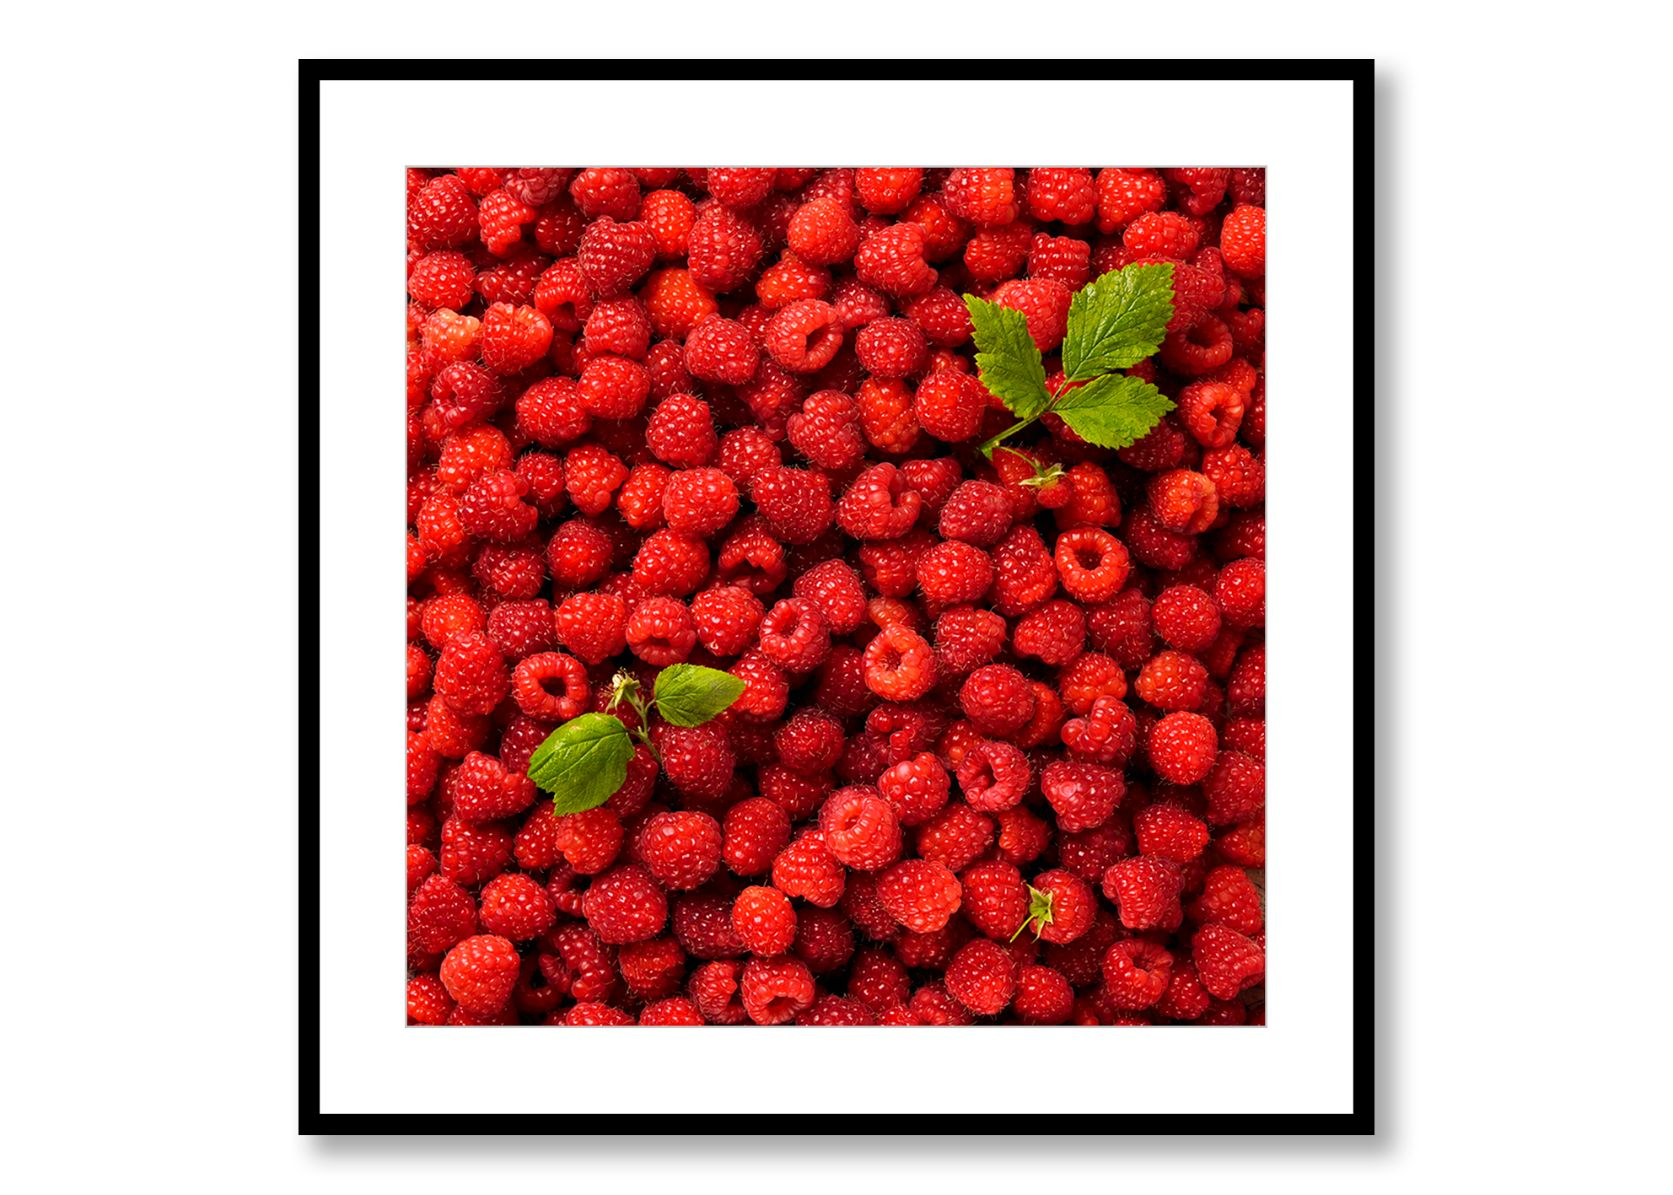 Raspberries. Food Art. Prints for Sale. Photo by Fredrik Rege